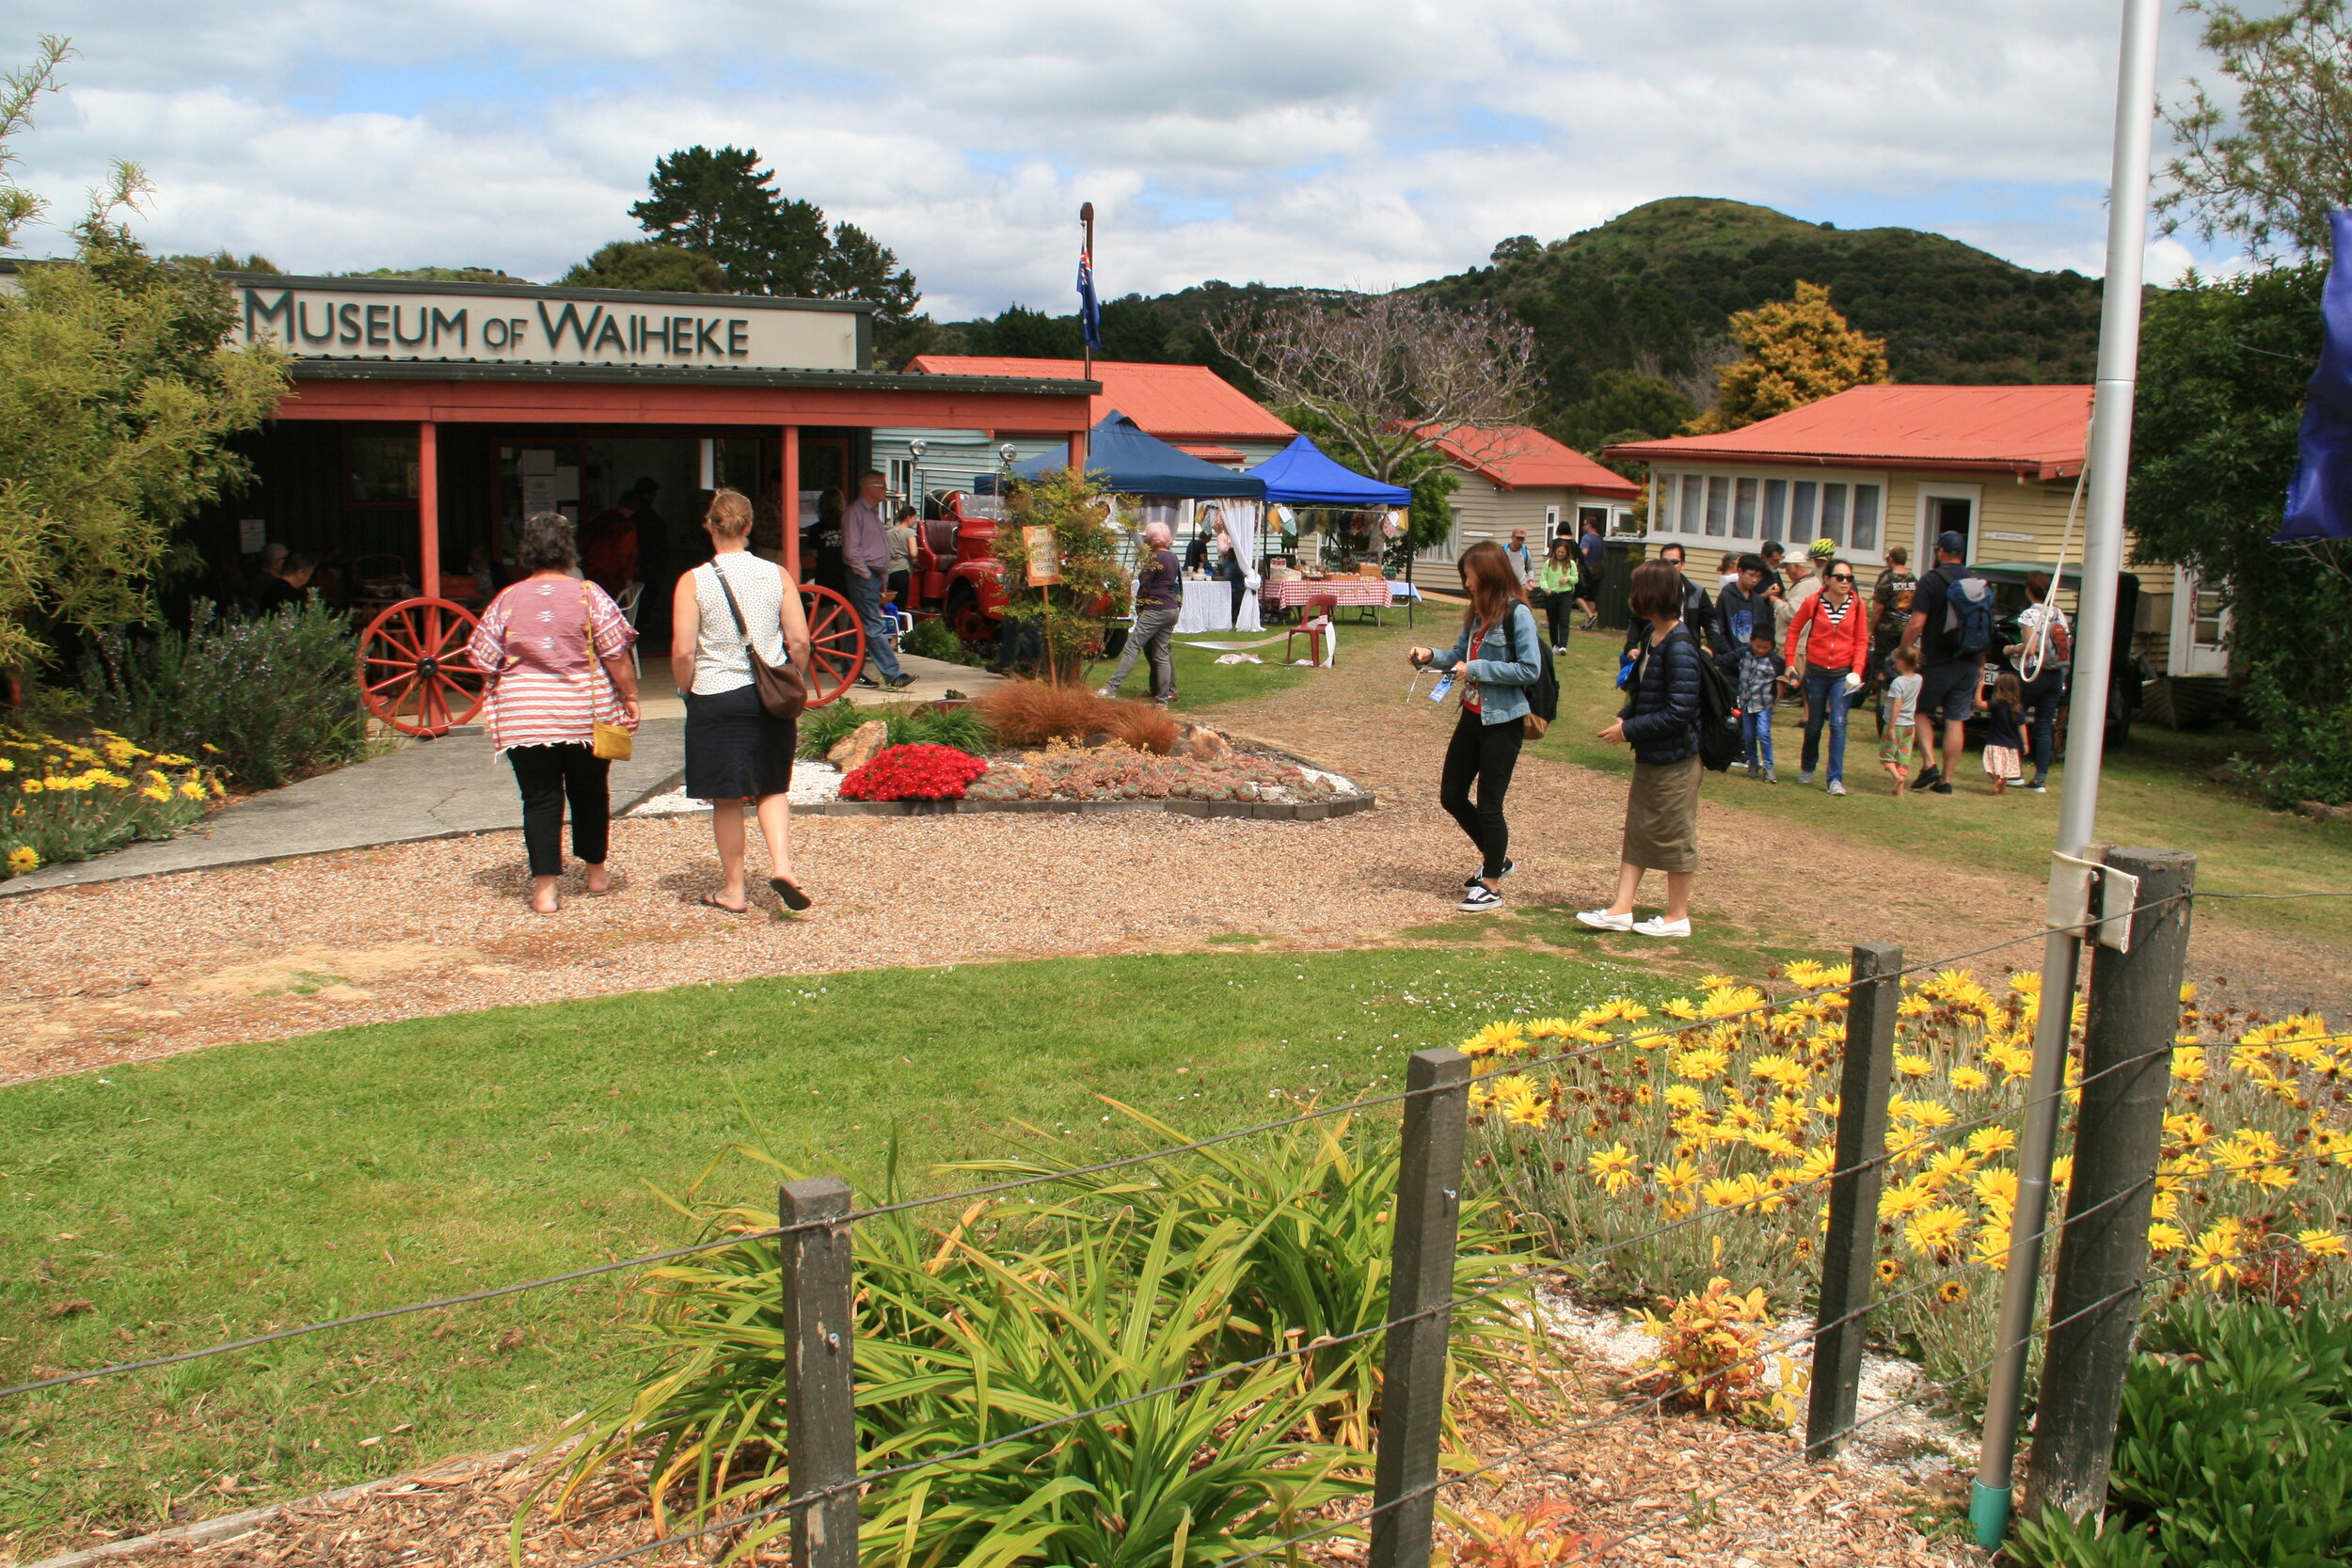 Waiheke Island Historical Society - We operate the Museum of Waiheke (on Onetangi Straight), and provide events of historical interest to the community. Volunteers will help with hosting visitors to the museum; archiving; museum management. There are no costs involved in volunteering, although we encourage people to become Society members ($20/year). Volunteering time averages approximately four hours per month.Contact: Mark James / tmarkjames@yahoo.com / 022 066 0175Website: www.waihekemuseum.org.nz